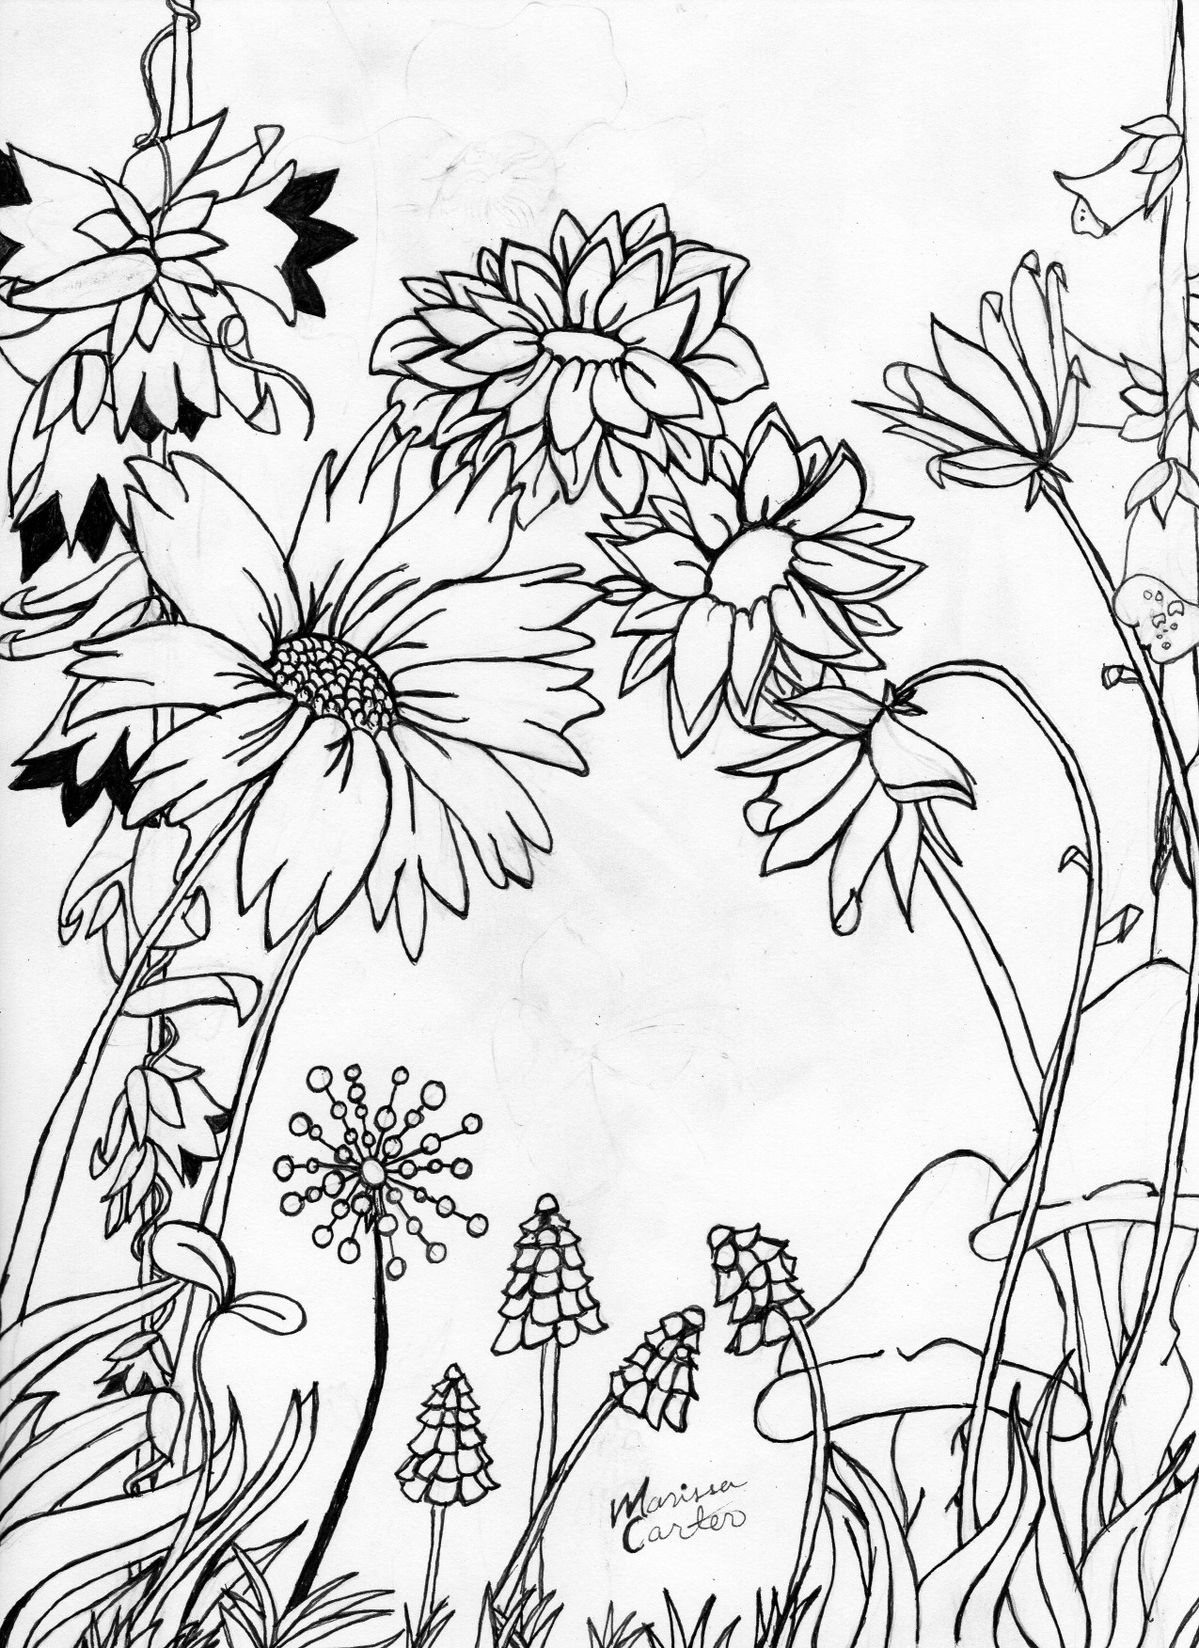 uncolored pictures of flowers uncolored flowers for adult coloring book in zenart style pictures flowers of uncolored